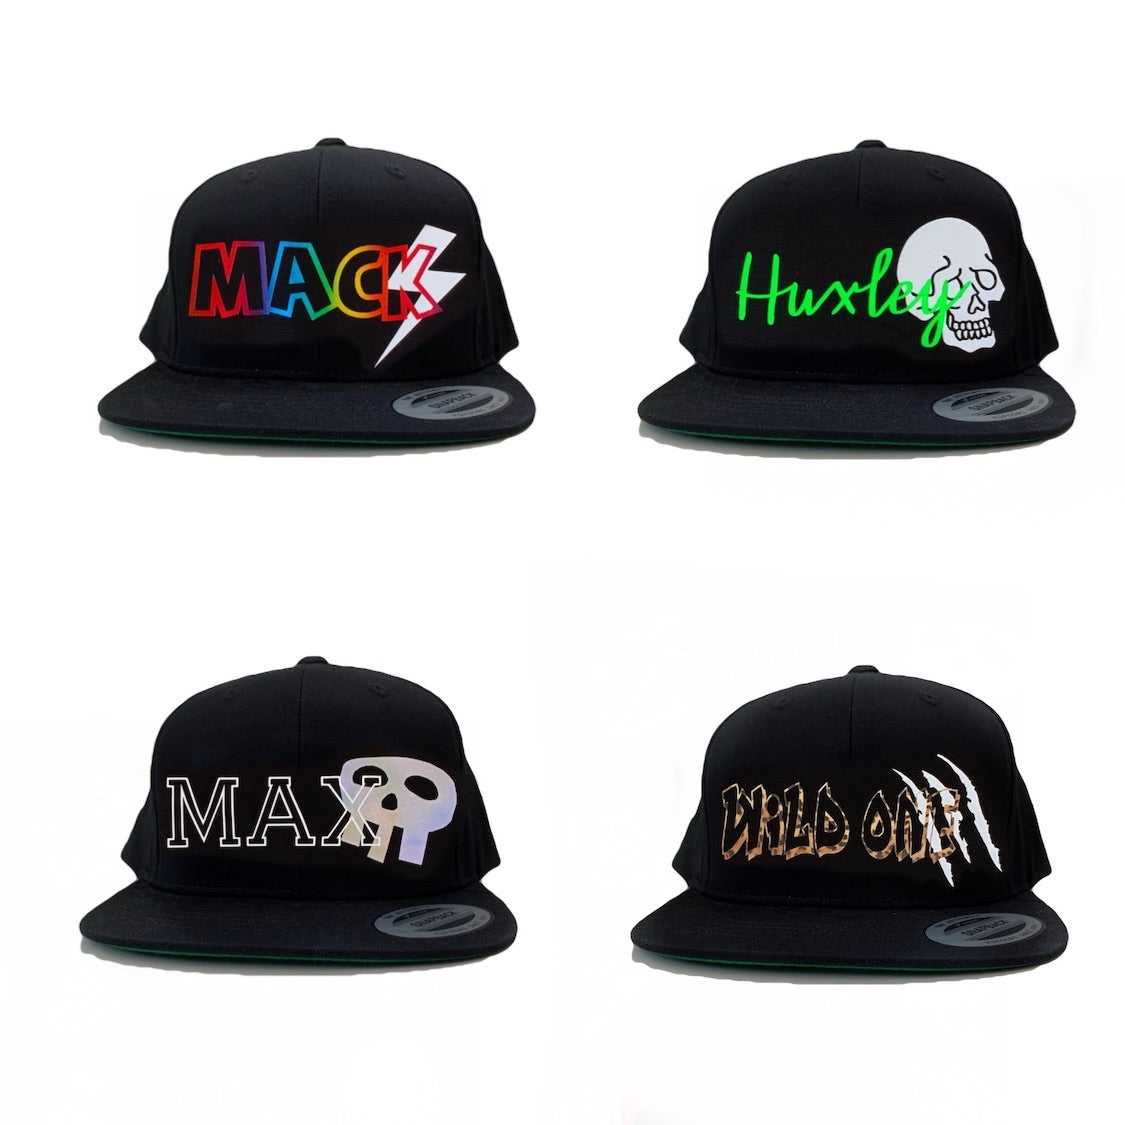 WHITE YOUTH Snapbacks - Personalised with Design